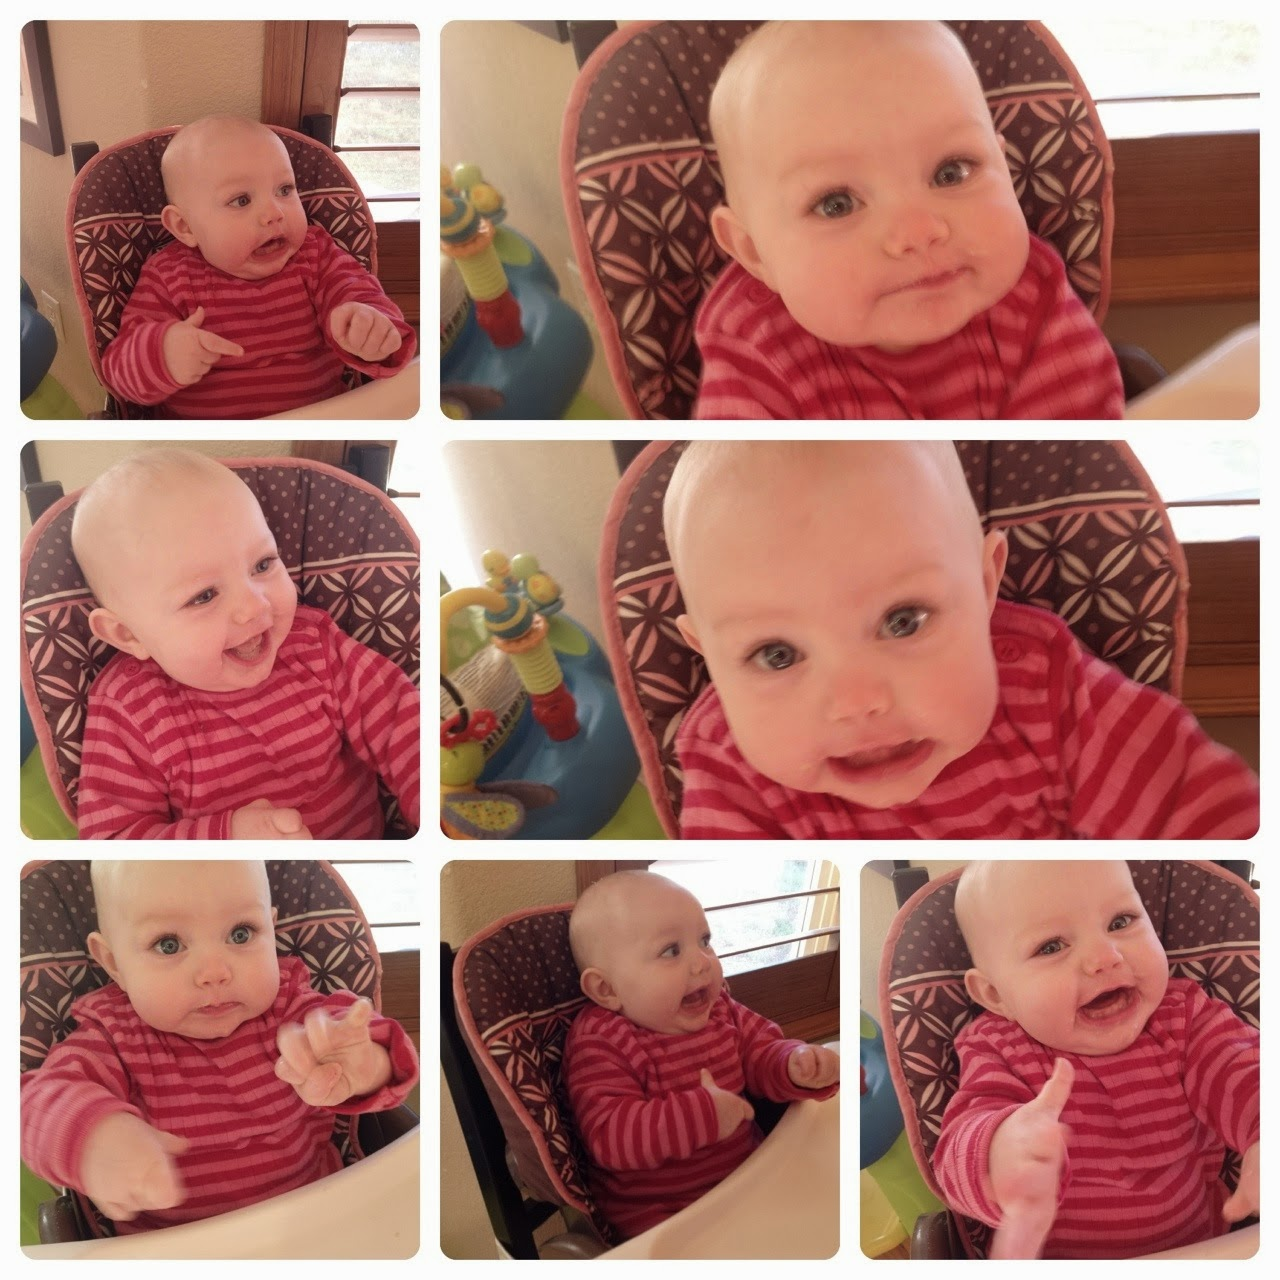 She Squeezes Her Fists And Growls At Us It Is Just So Cute Sorry There Are So Many Pictures I Just Wanted To Share All Her Expressions